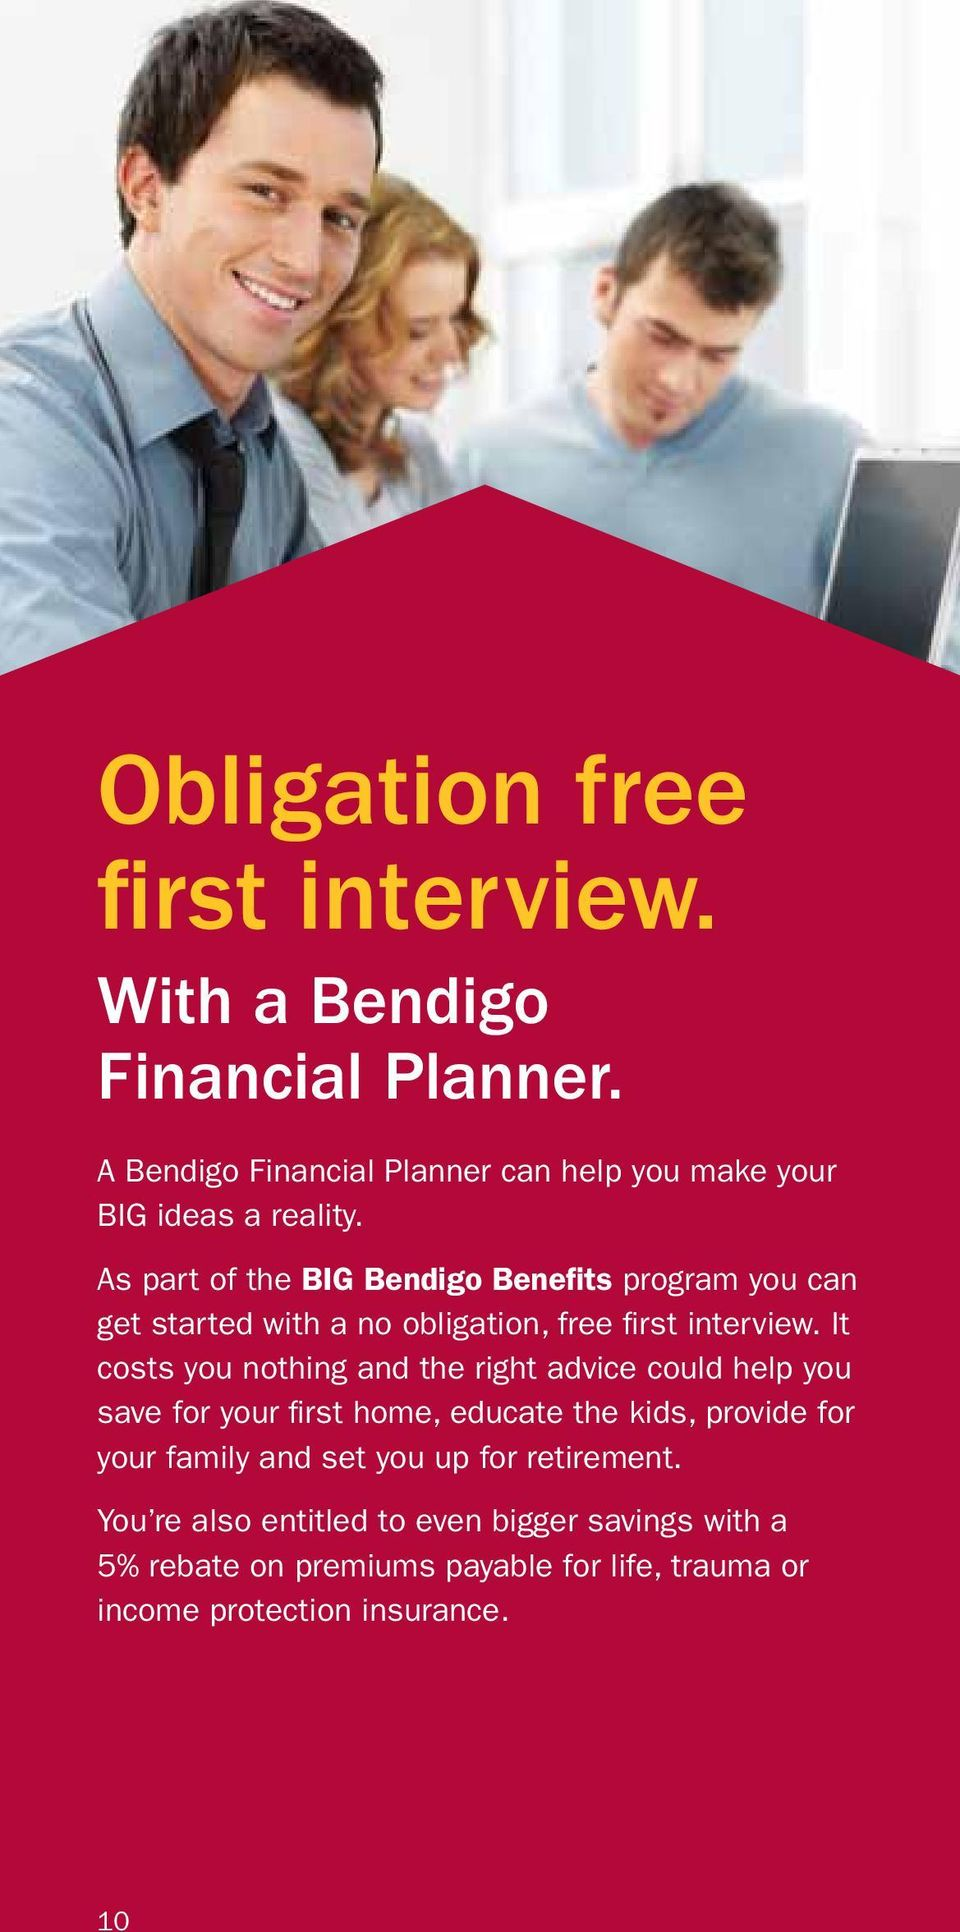 As part of the BIG Bendigo Benefits program you can get started with a no obligation, free first interview.